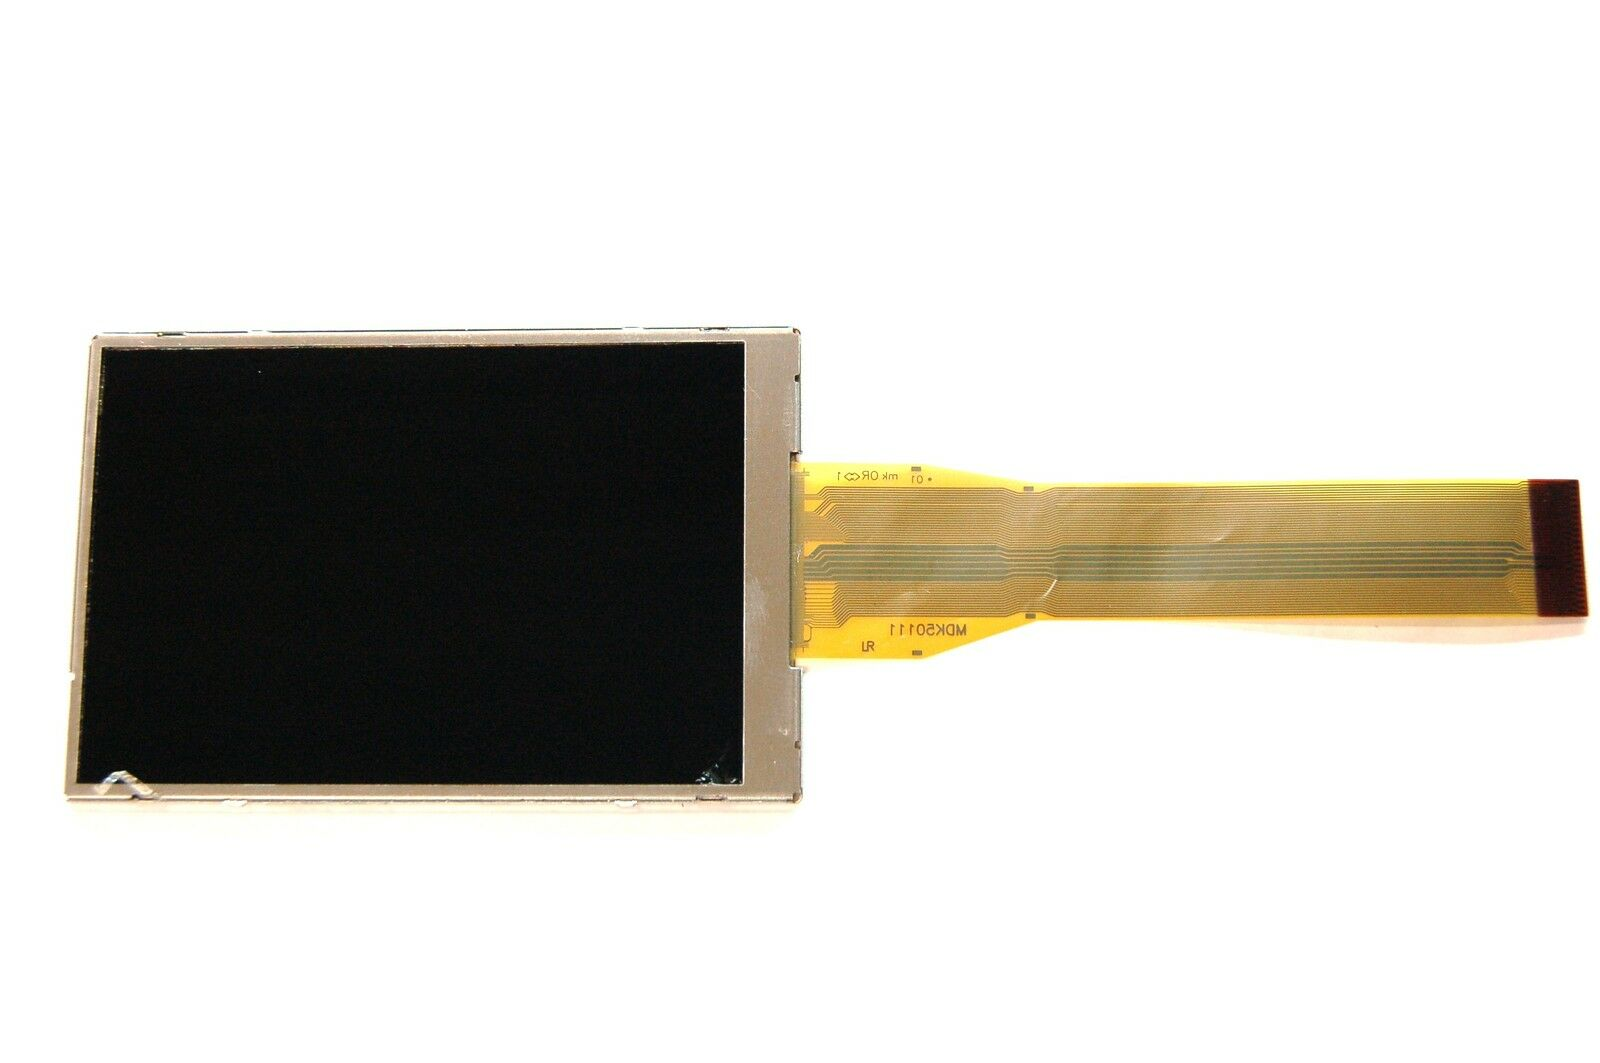 Panasonic Lumix Dmc-lx3 Dmc-g2 Lcd Display Screen